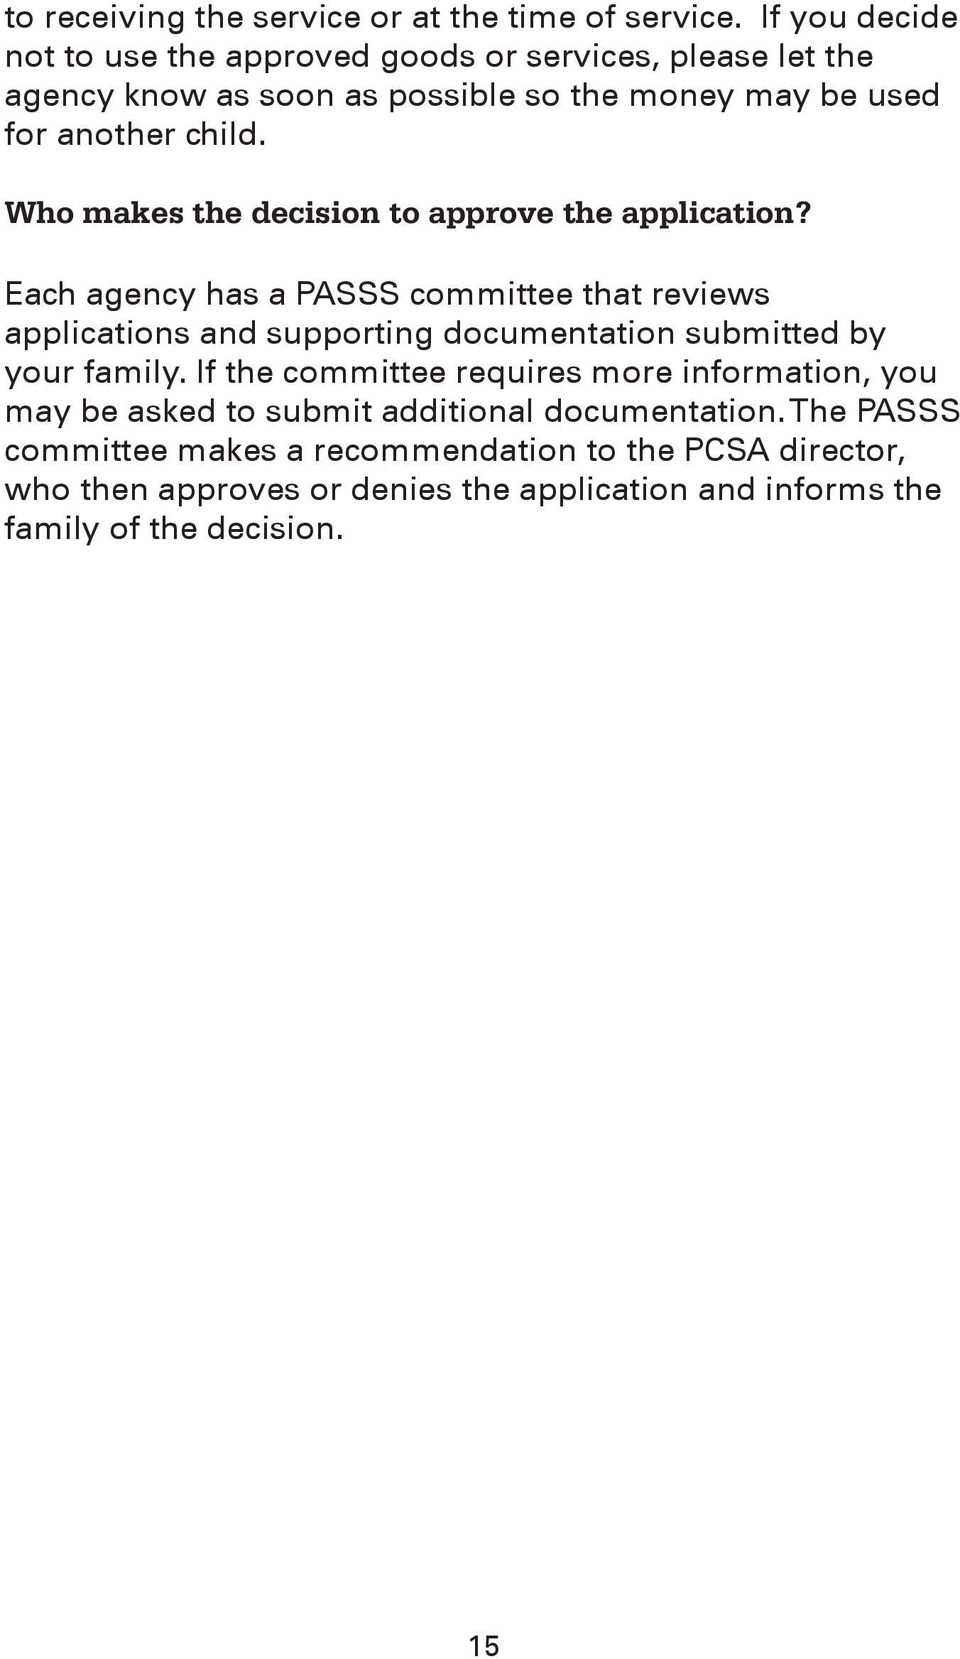 Who makes the decision to approve the application?